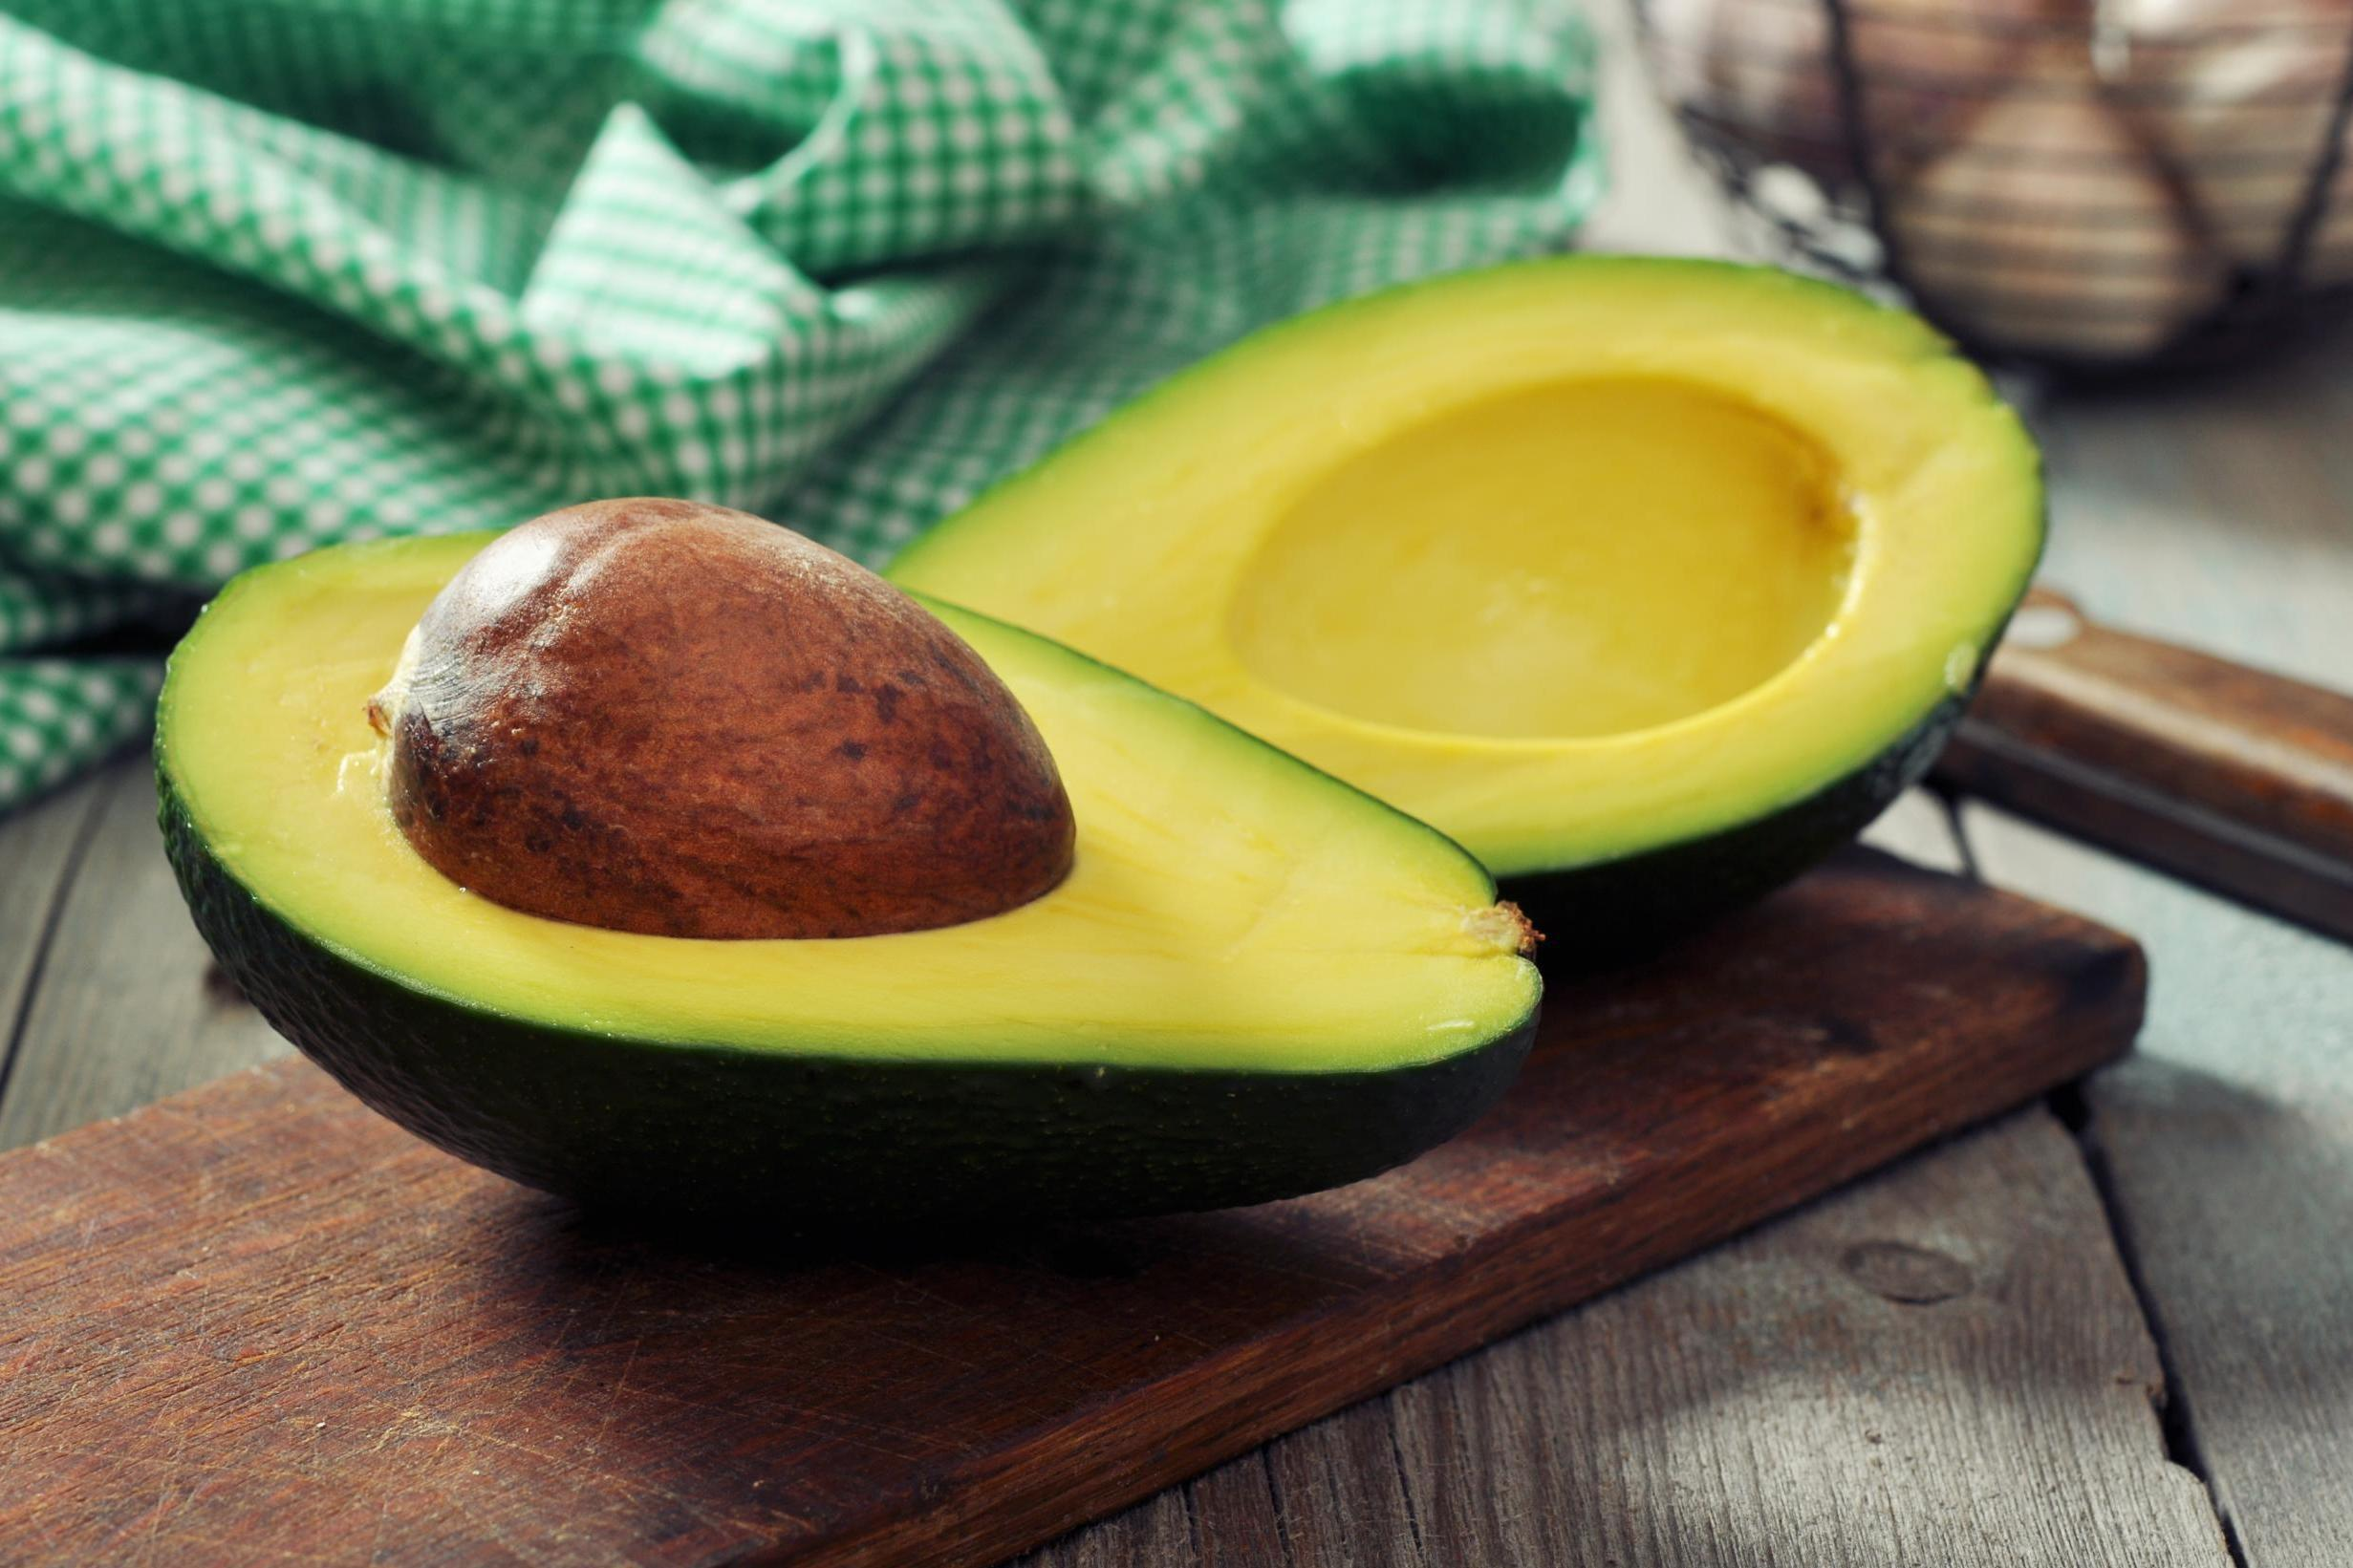 You should be washing avocados to protect from bacteria, FDA says